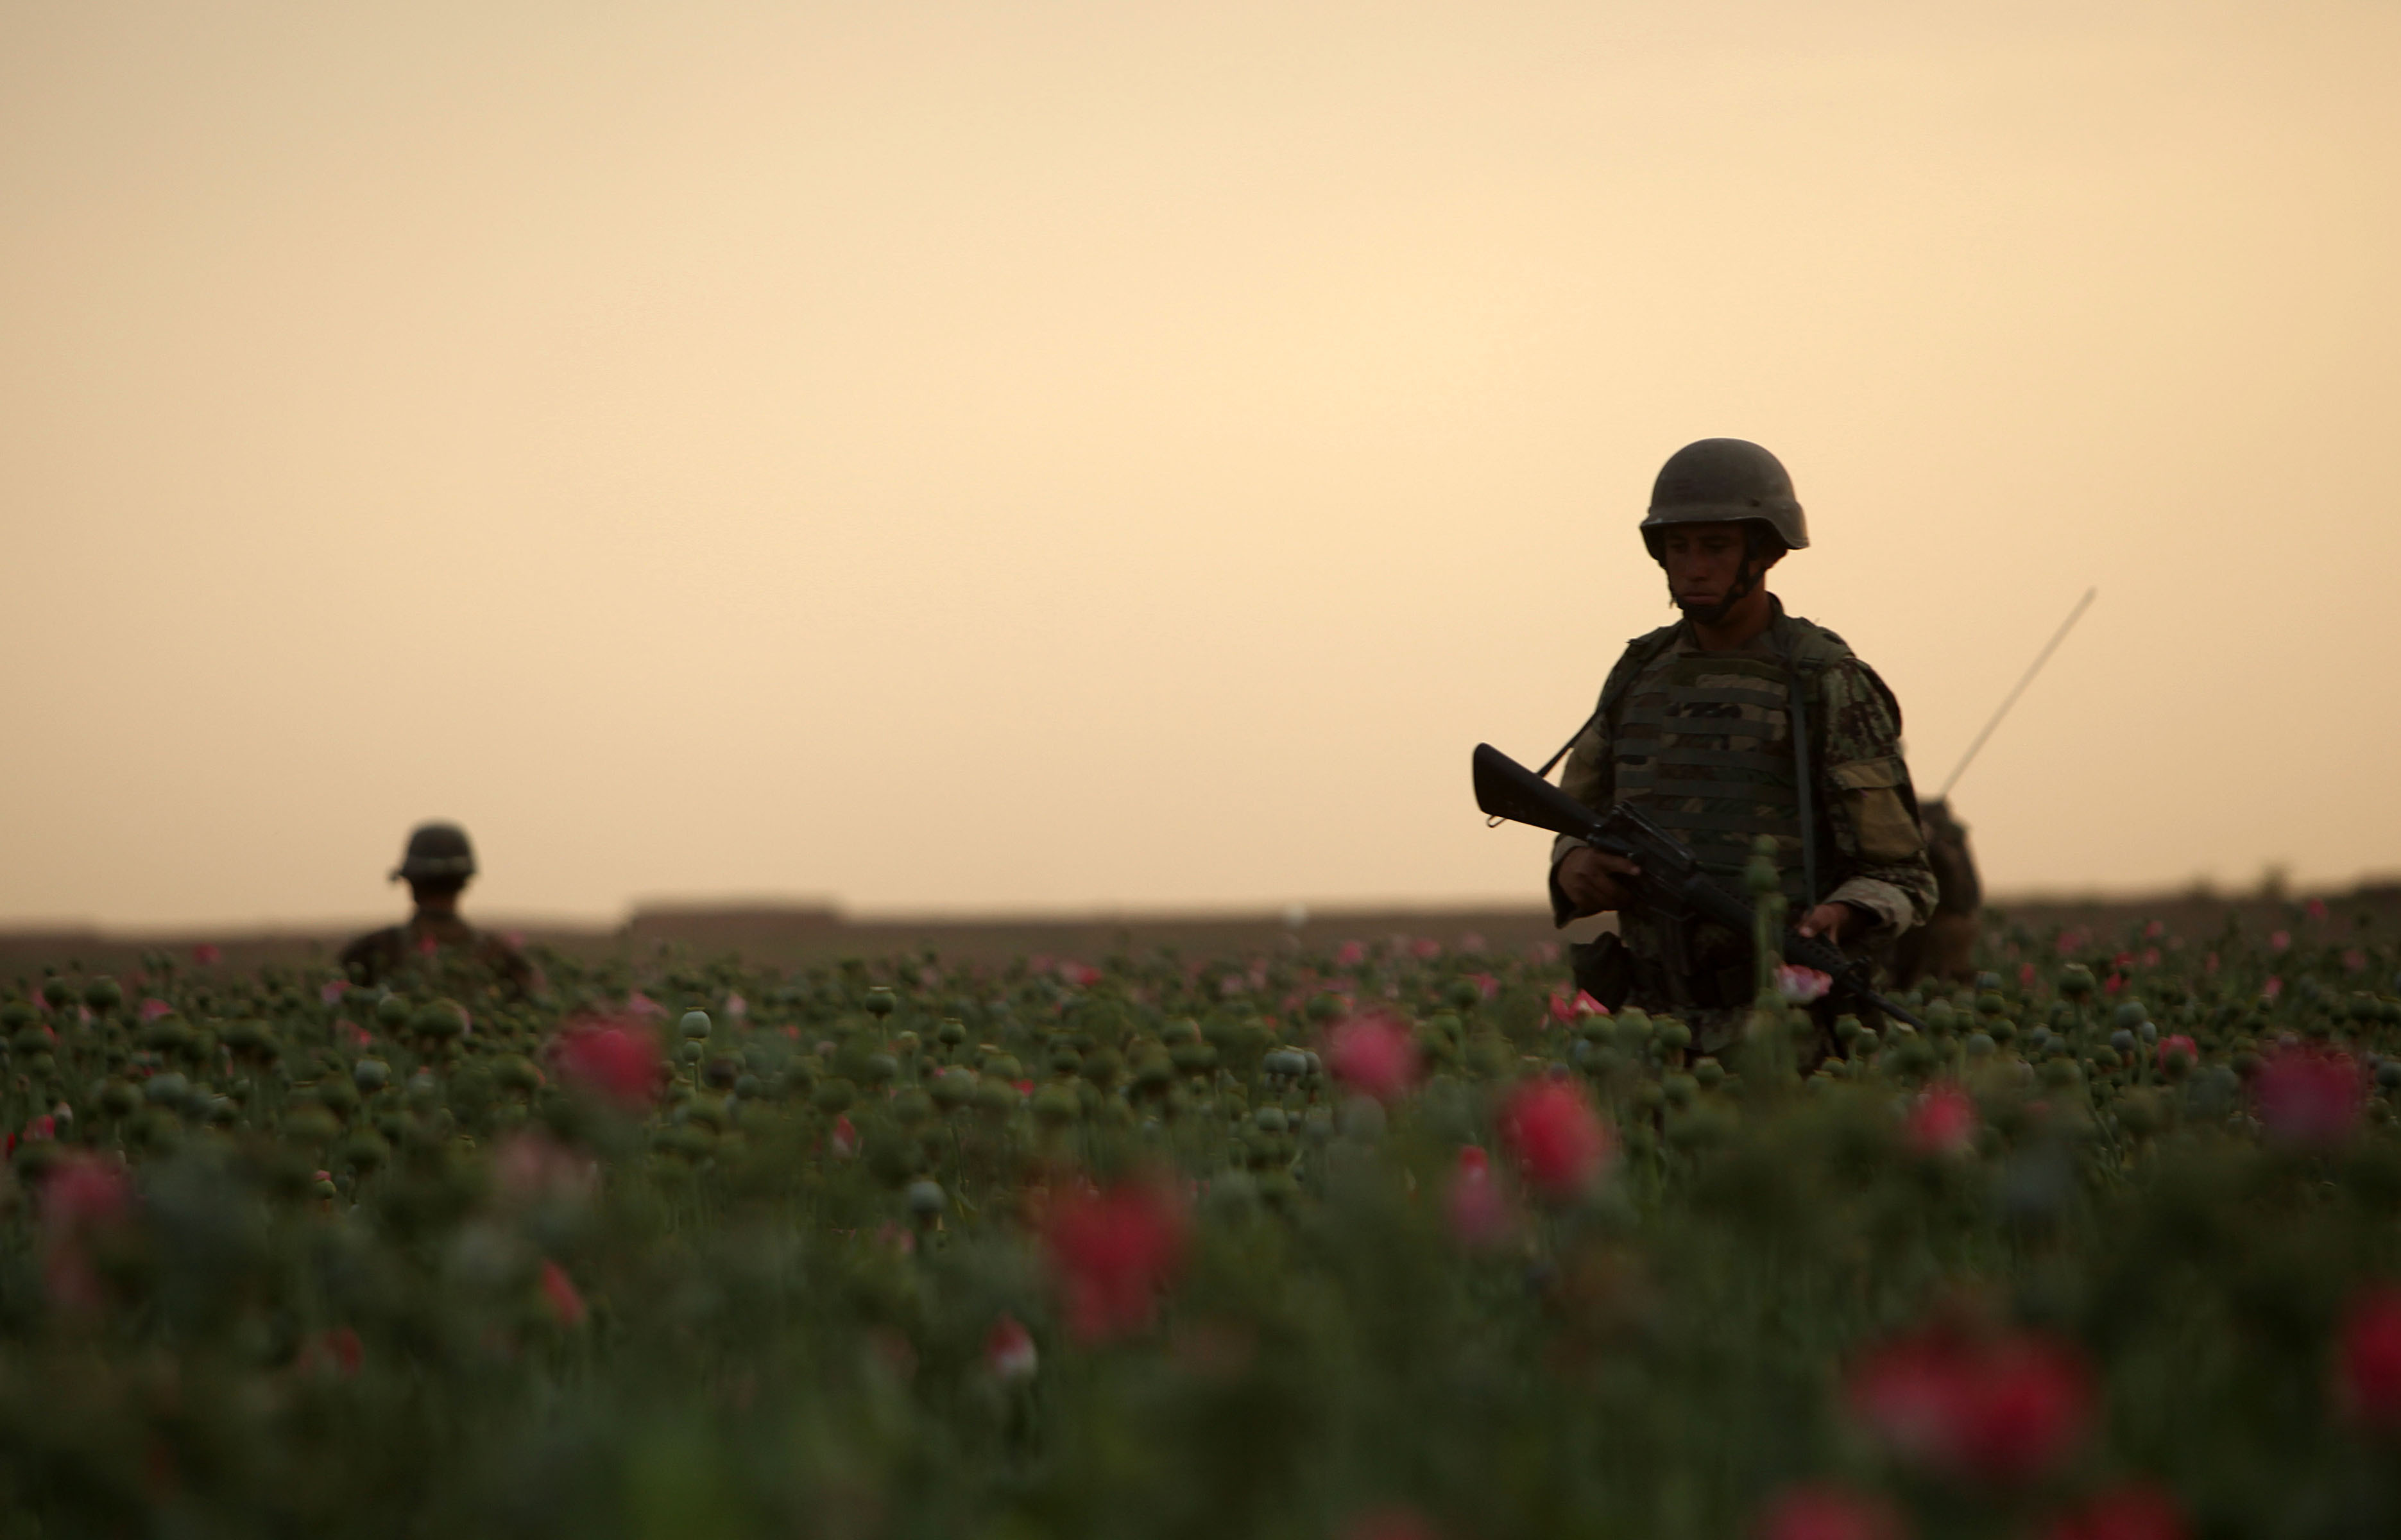 Afghan National Army (ANA) soldiers conduct a satellite patrol through a poppy field in Marjah, Afghanistan, April 17, 2012. (U.S. Marine Corps photo)